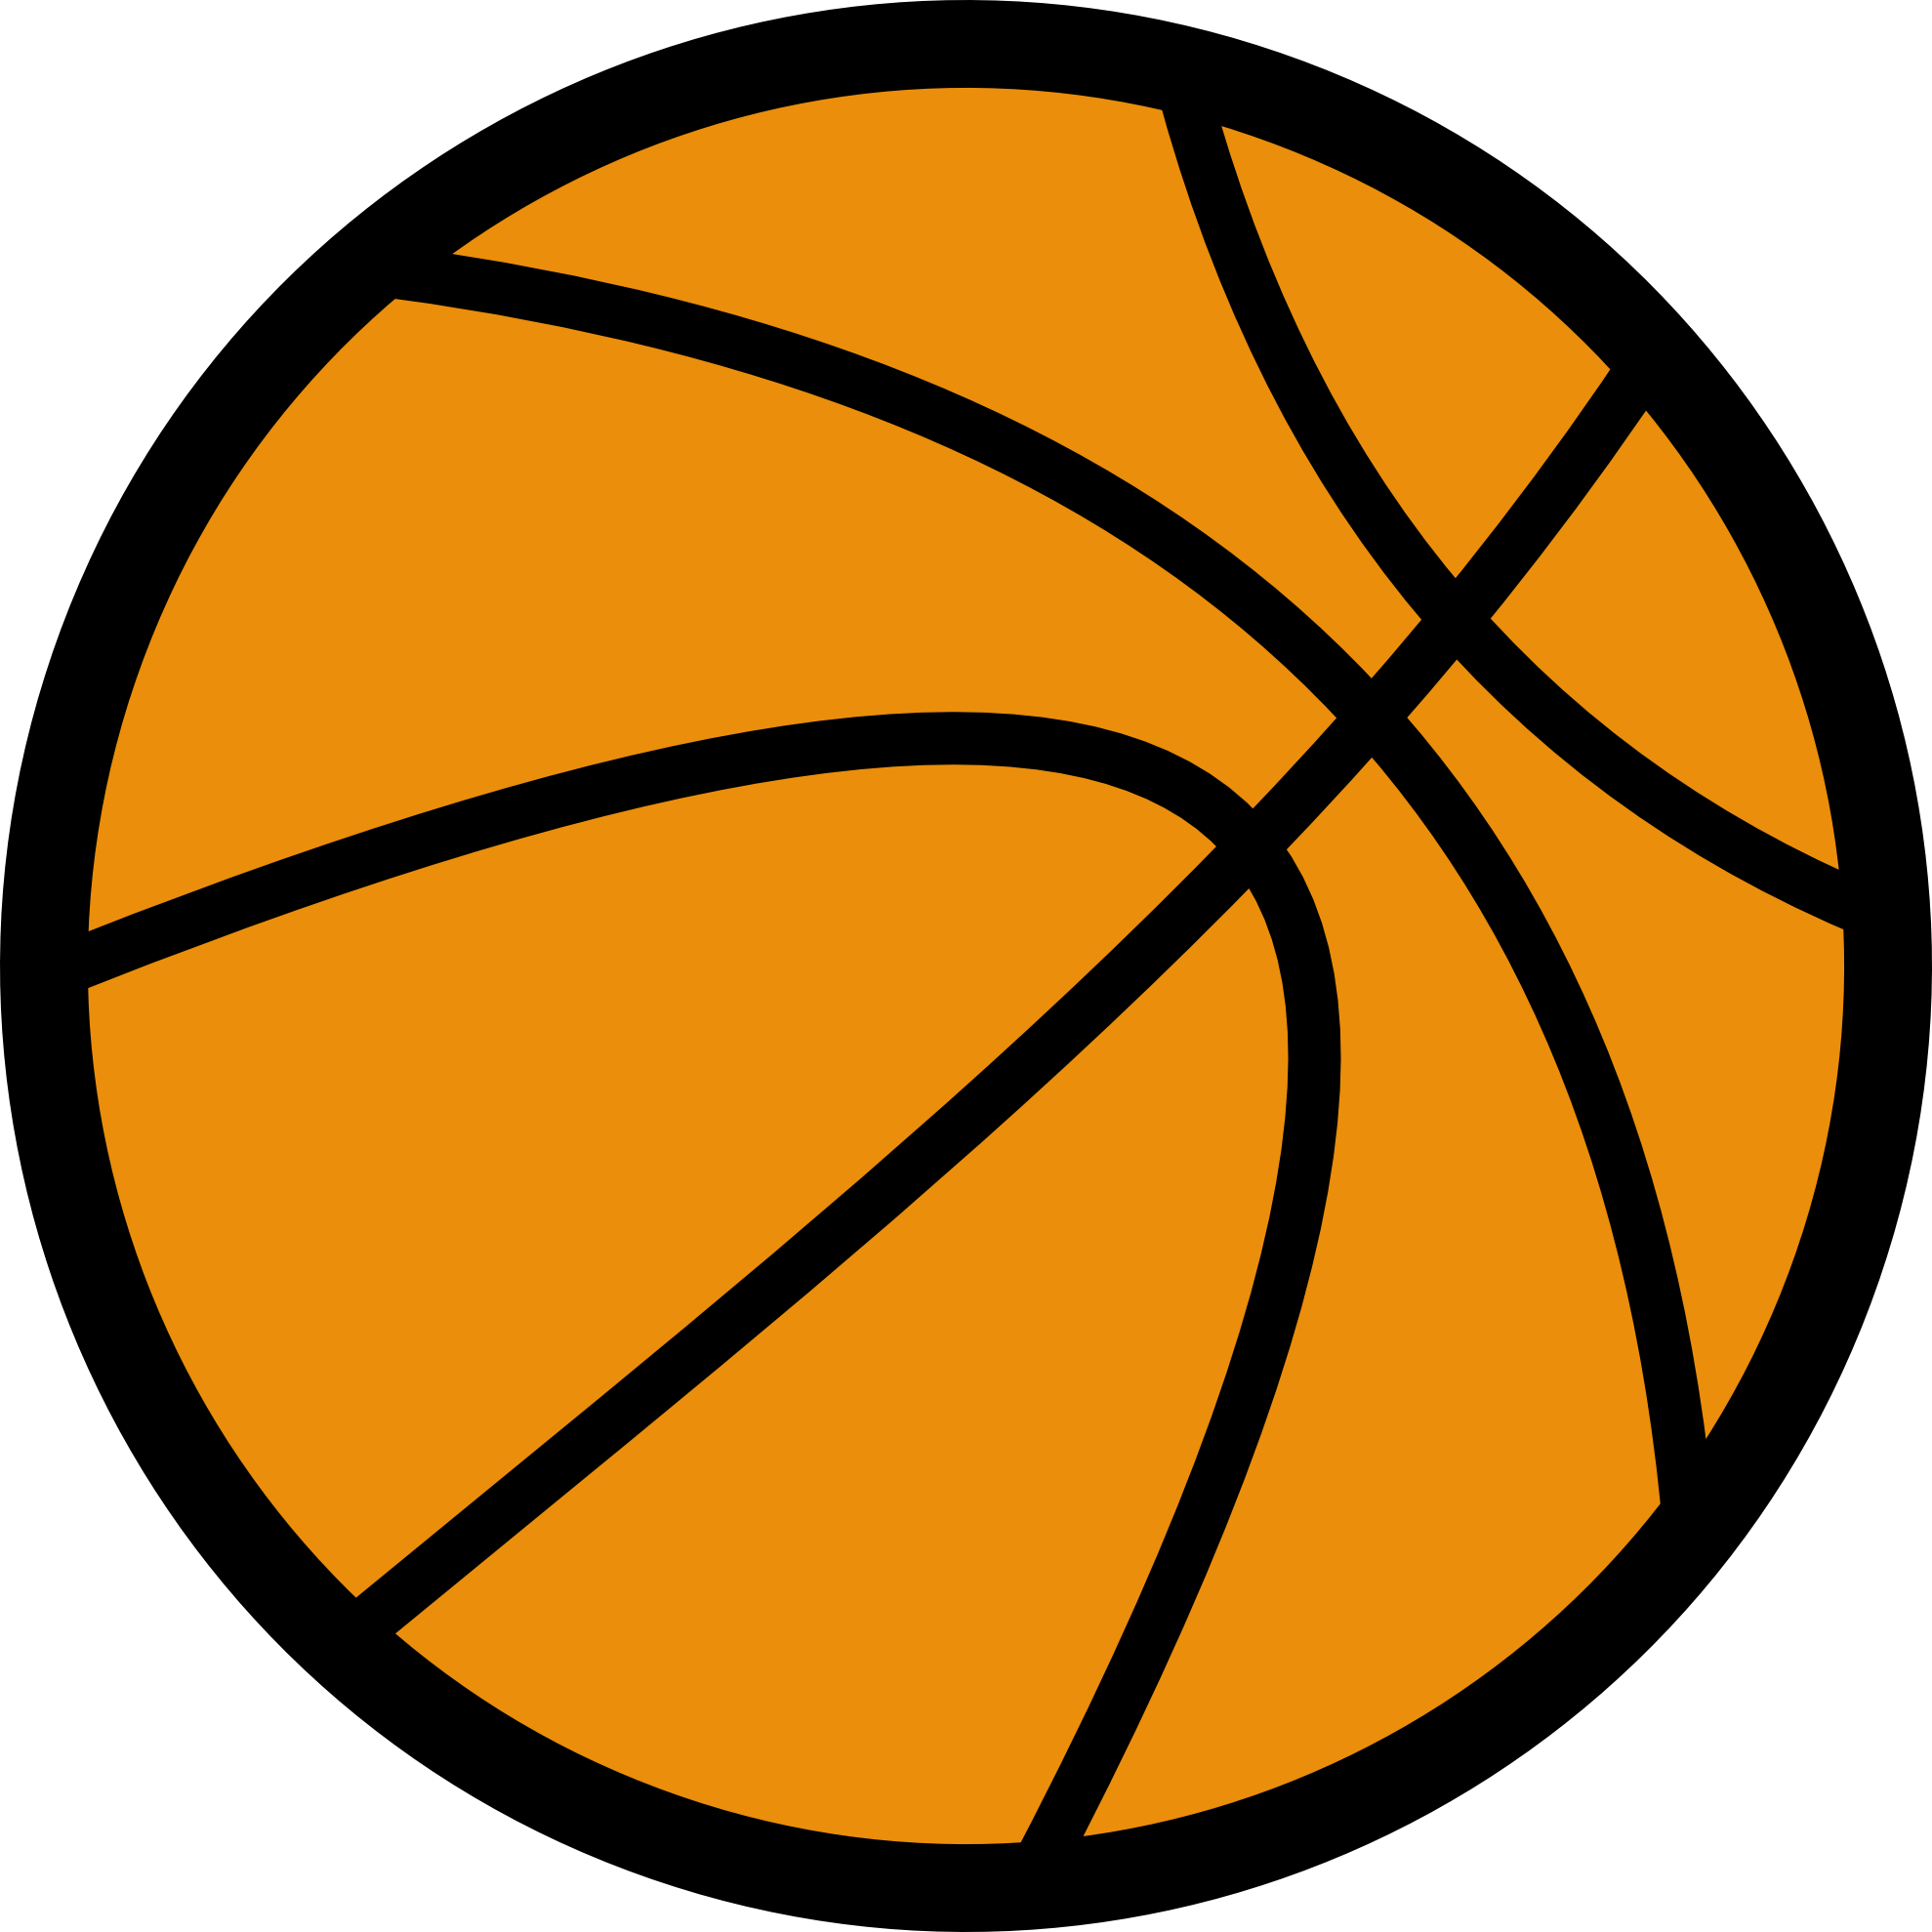 PNG File Name: Basketball Plu